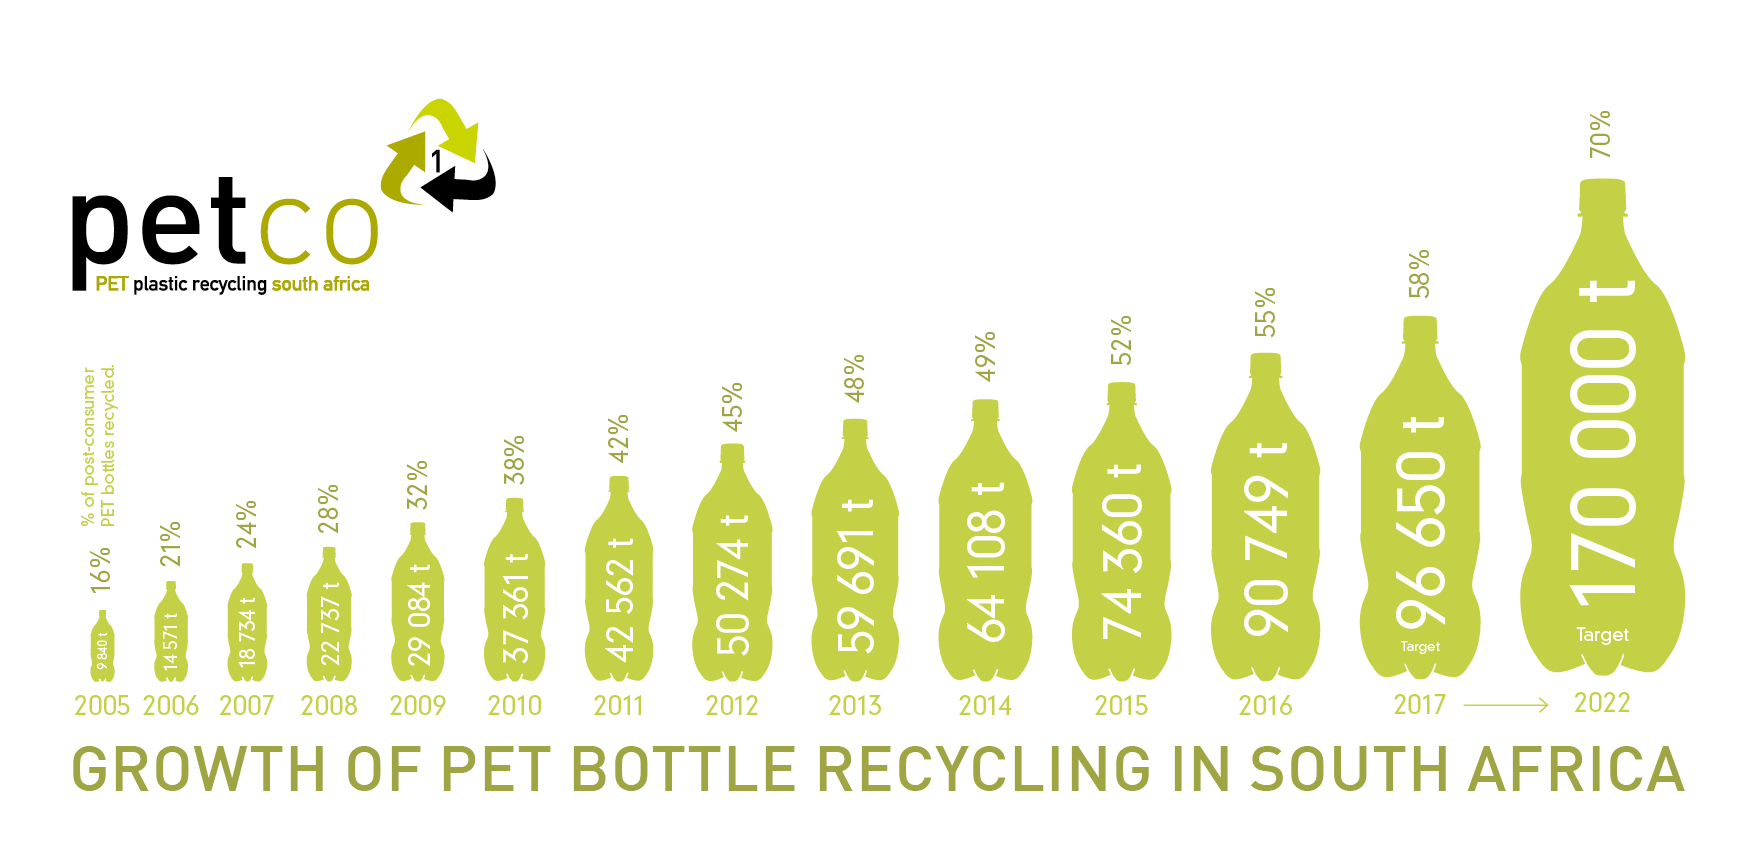 PLASTIC BOTTLE RECYCLED TONNAGE GROWN BY 822% SINCE 2005